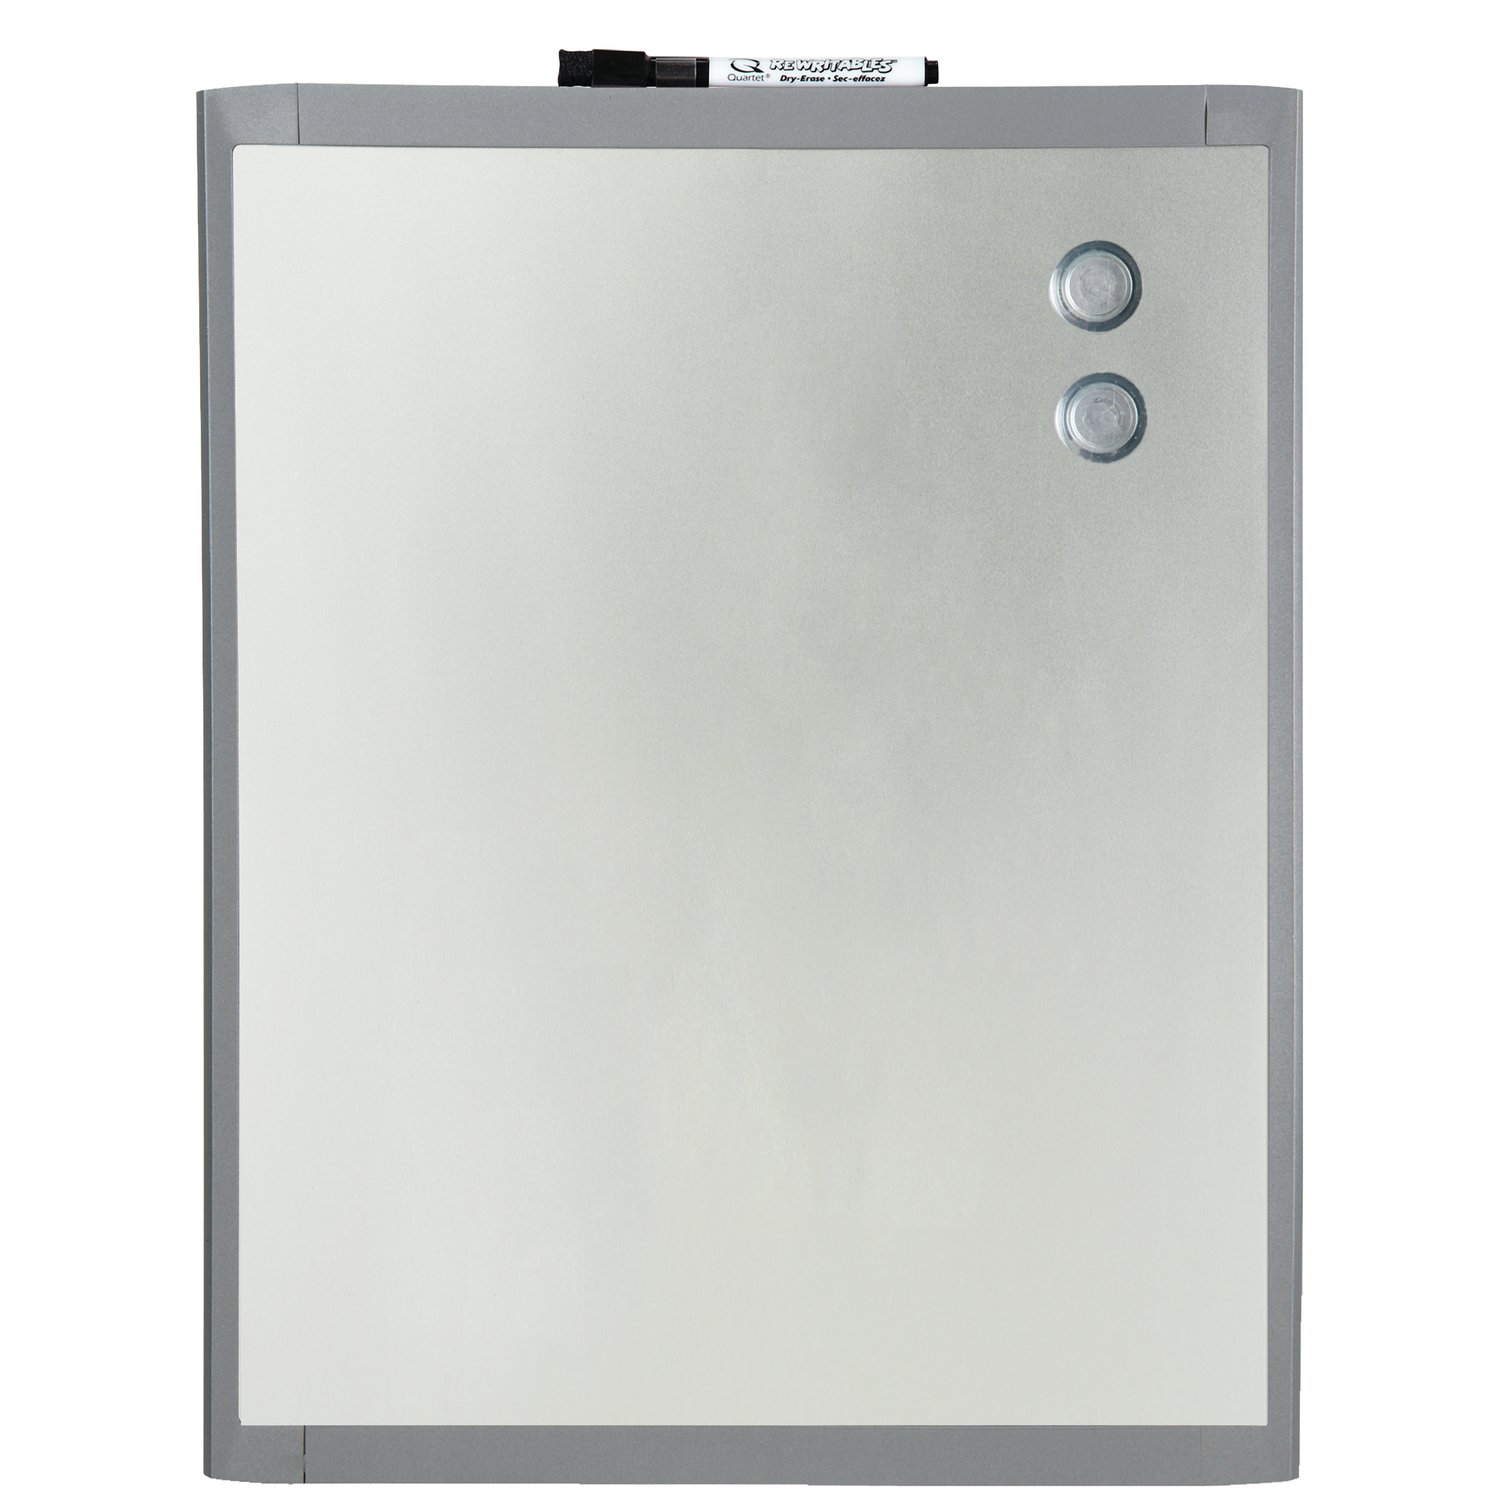 stainless steel dry erase boards clean and strong  - quartet stainless steel finish magnetic dryerase board  x  inchesgraphite gray frame (mhos)